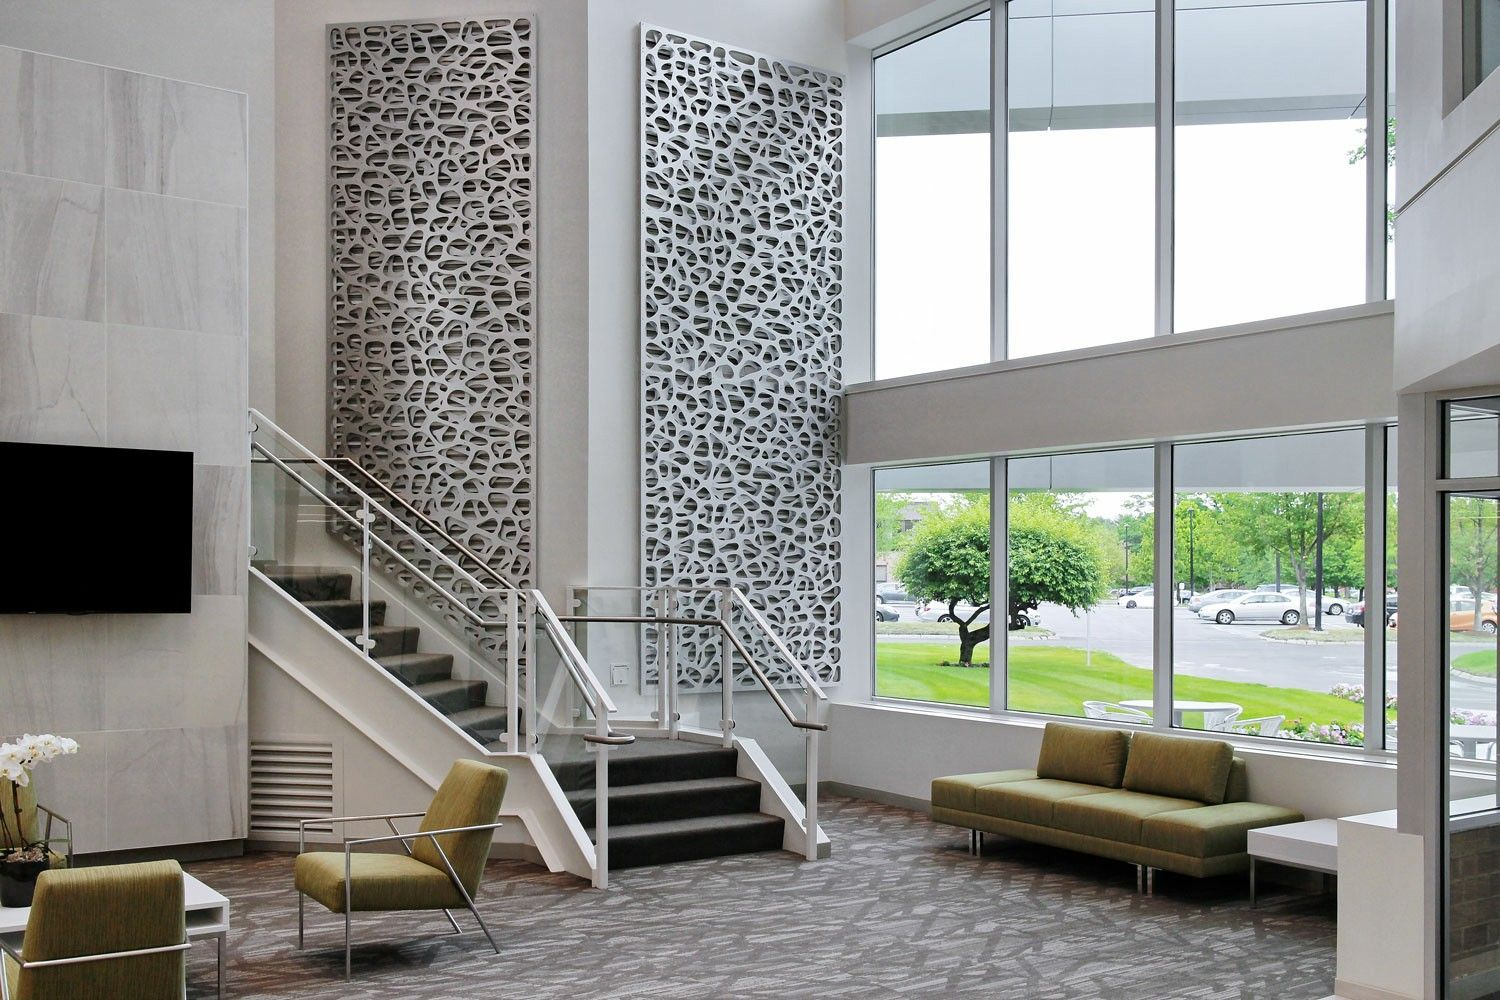 Lobby feature walls decorative screen vent covers